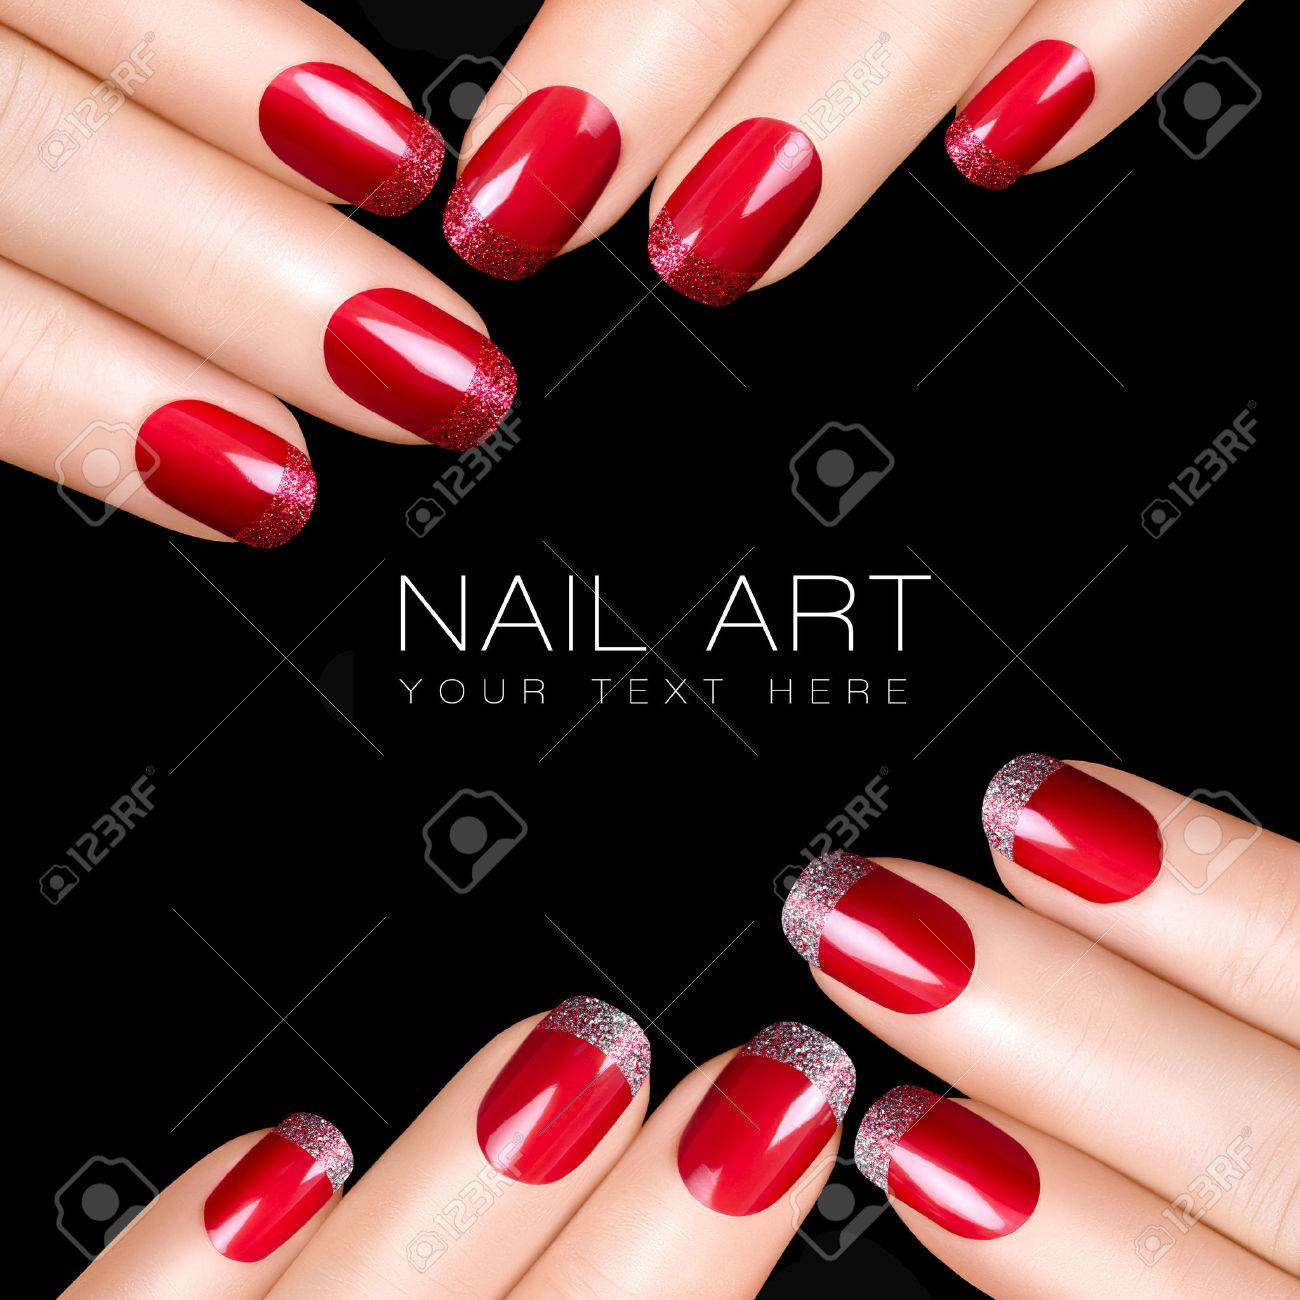 Holiday Nail Art Luxury Polish With Glitter French Manicure And Makeup Concept